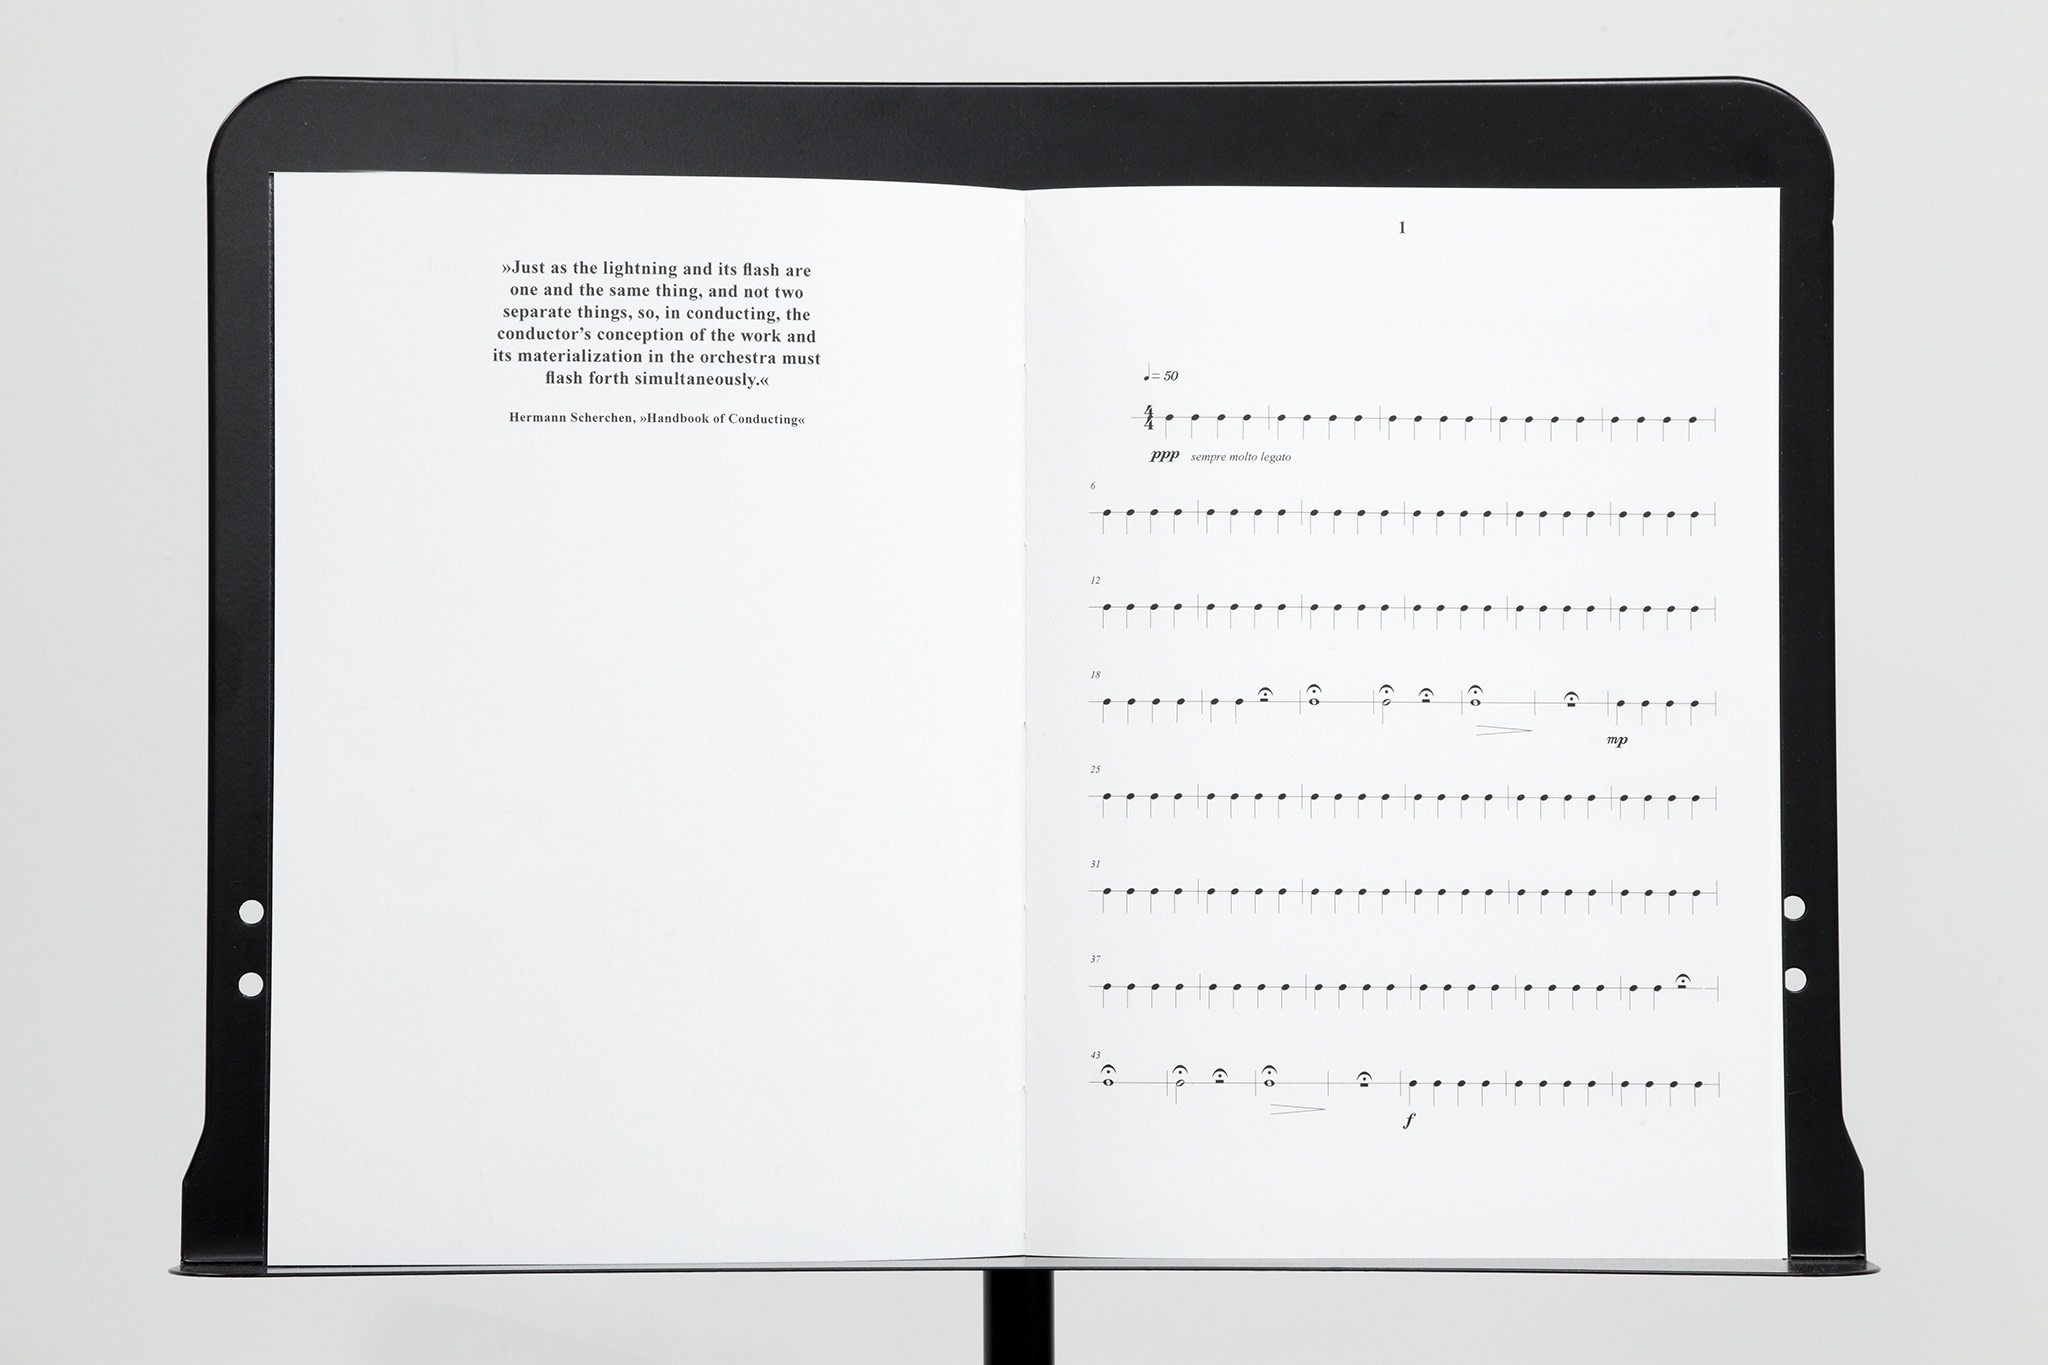 Ari Benjamin Meyers, The Lightning and its Flash (Solo for Conductor), 2011, digital print on natural paper, thread bound, music stand, 22 pages, 32 x 45 cm, edition of 5. Photo © Sebastiano Pellion